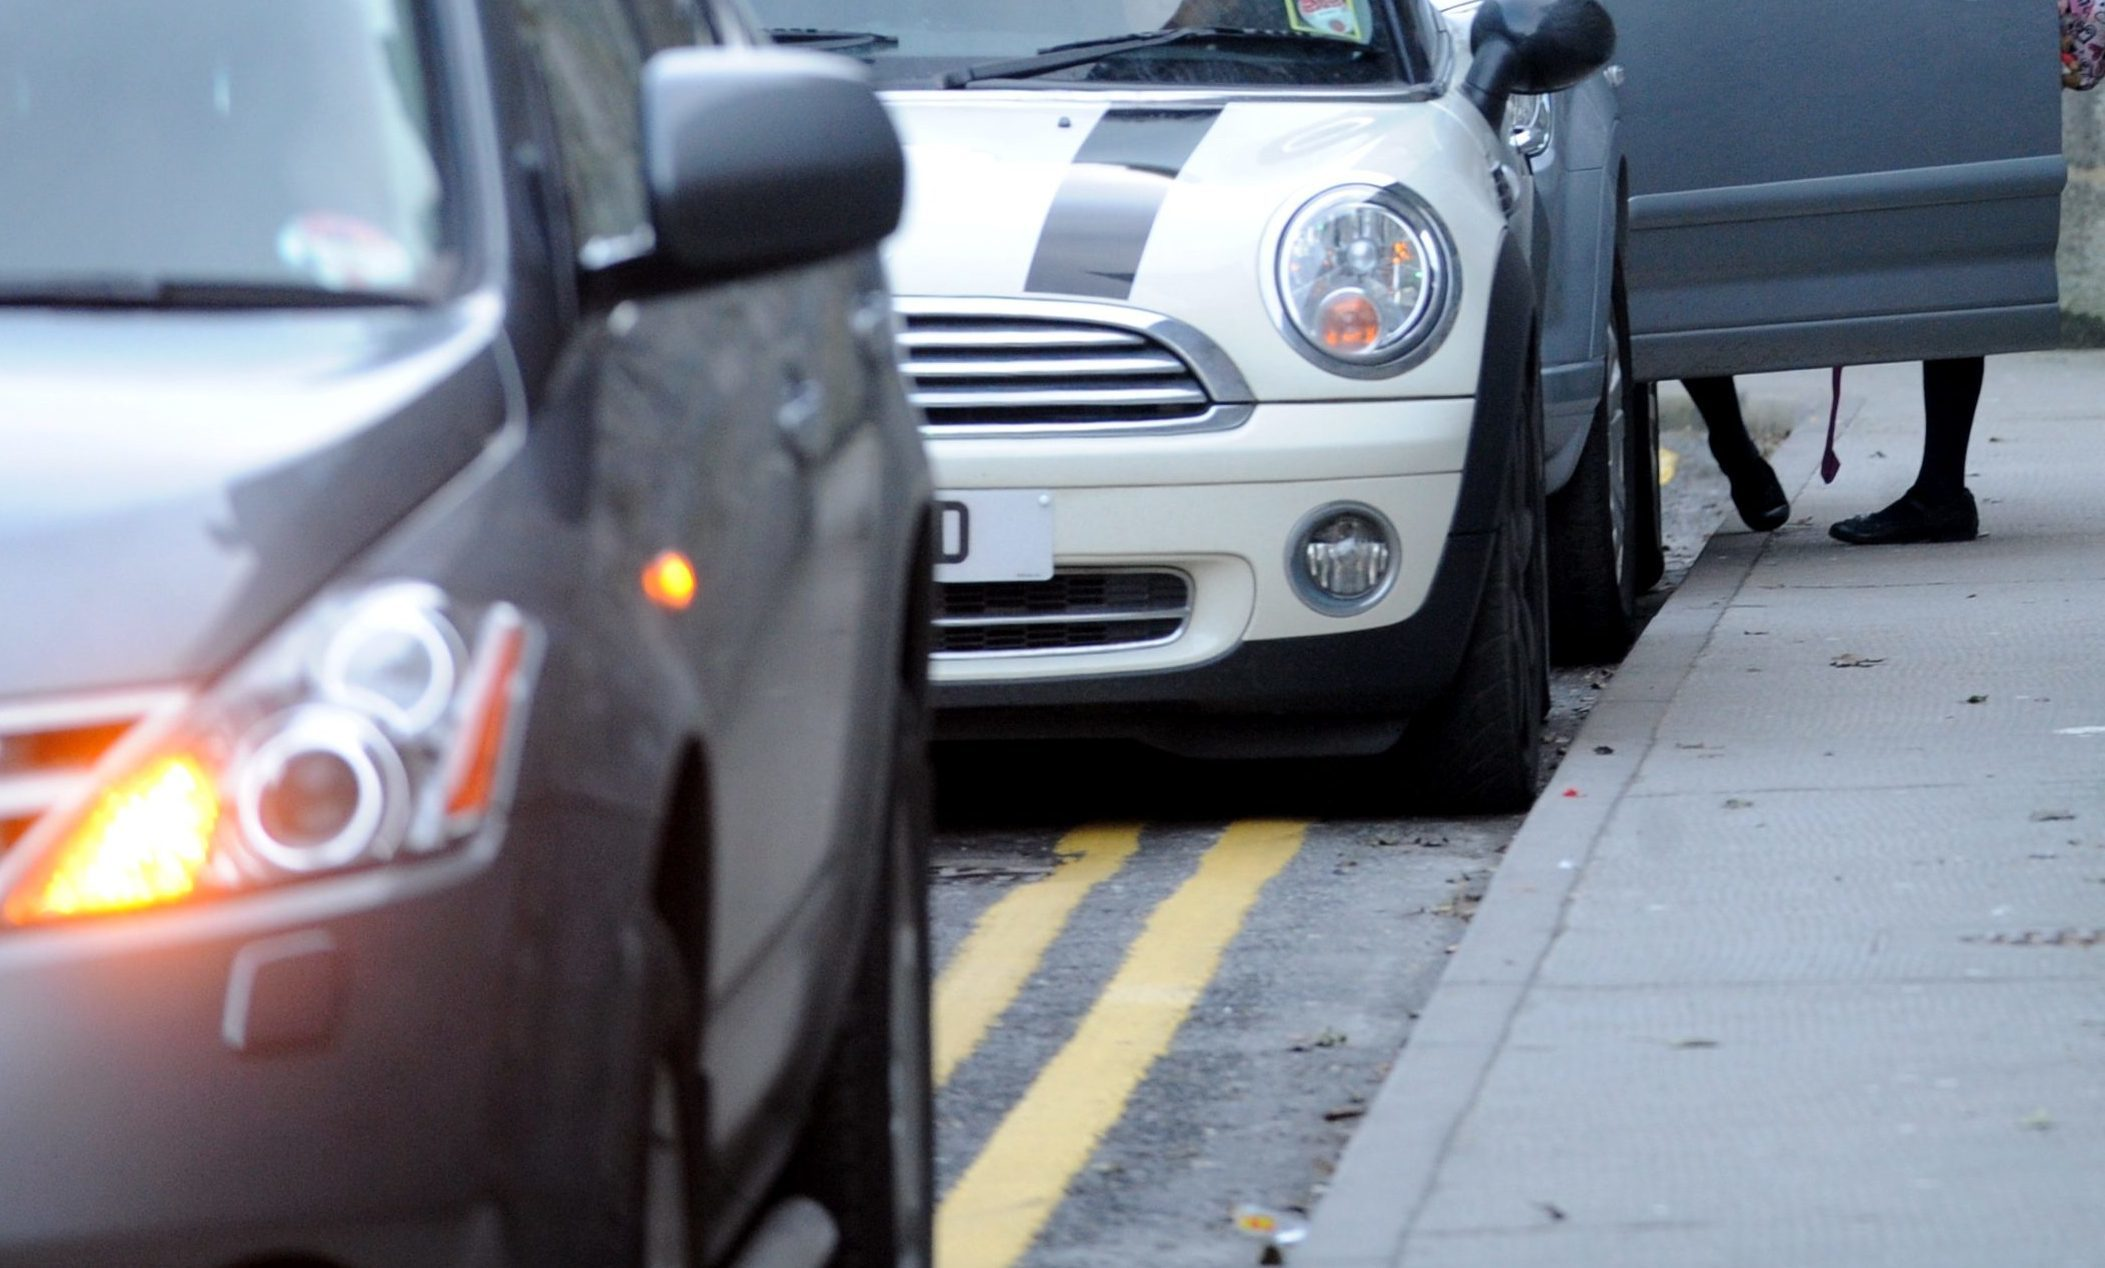 Councillors say there are options to alleviate Blairgowrie's parking issues